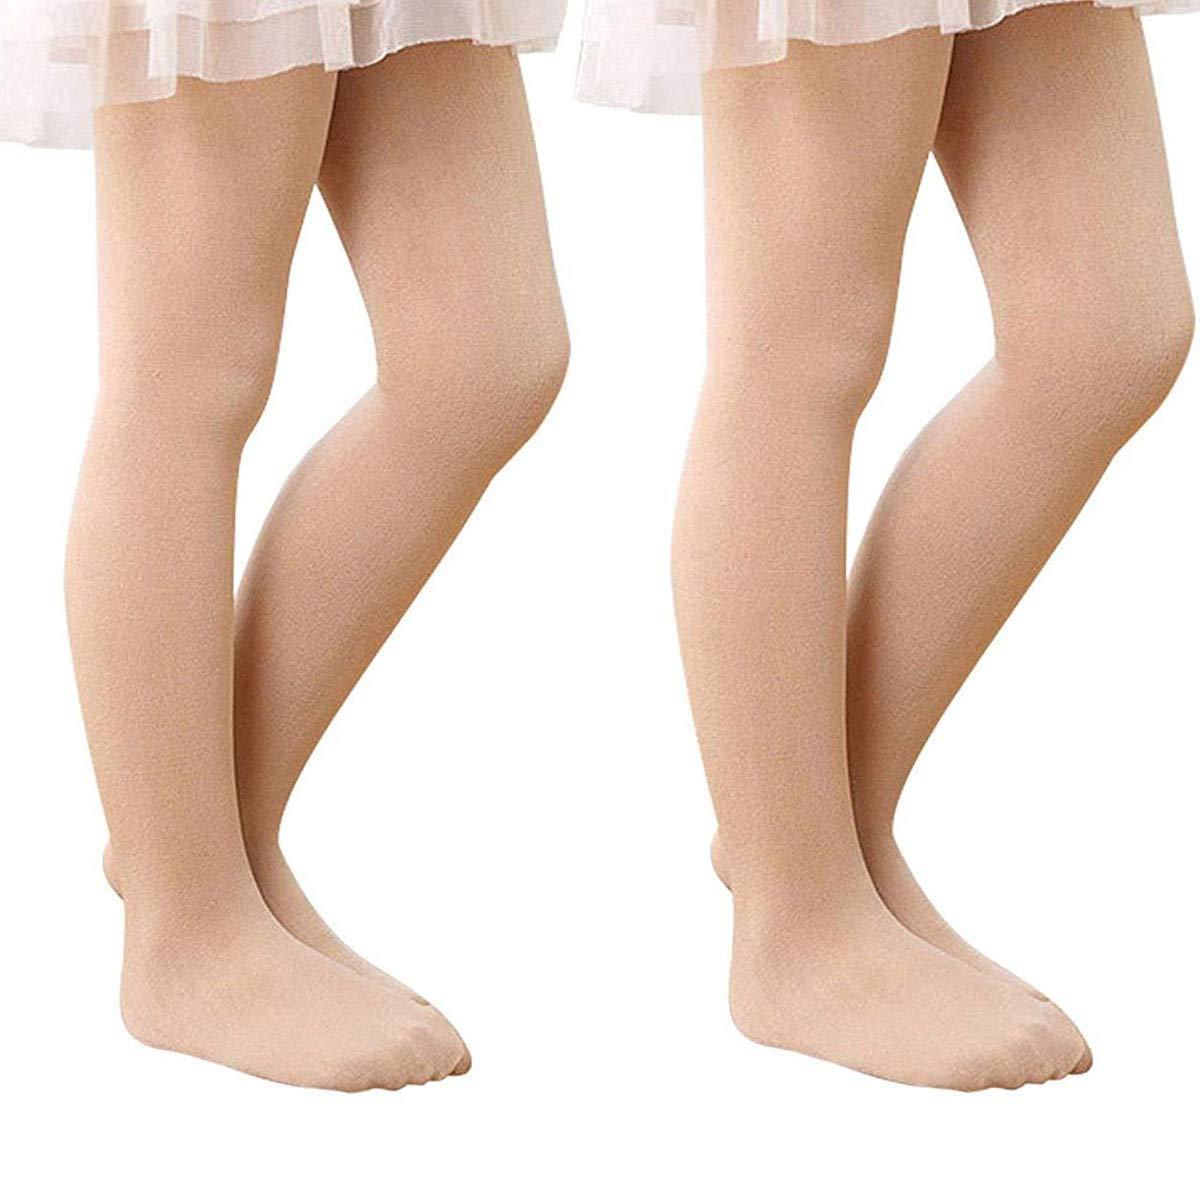 Zando Girl's Ultra Soft Pro Ballet Dance Tight Toddler Kids Footed Leggings Elastic Opaque Pants Tight 2 Pack Skin Color L by Zando (Image #1)